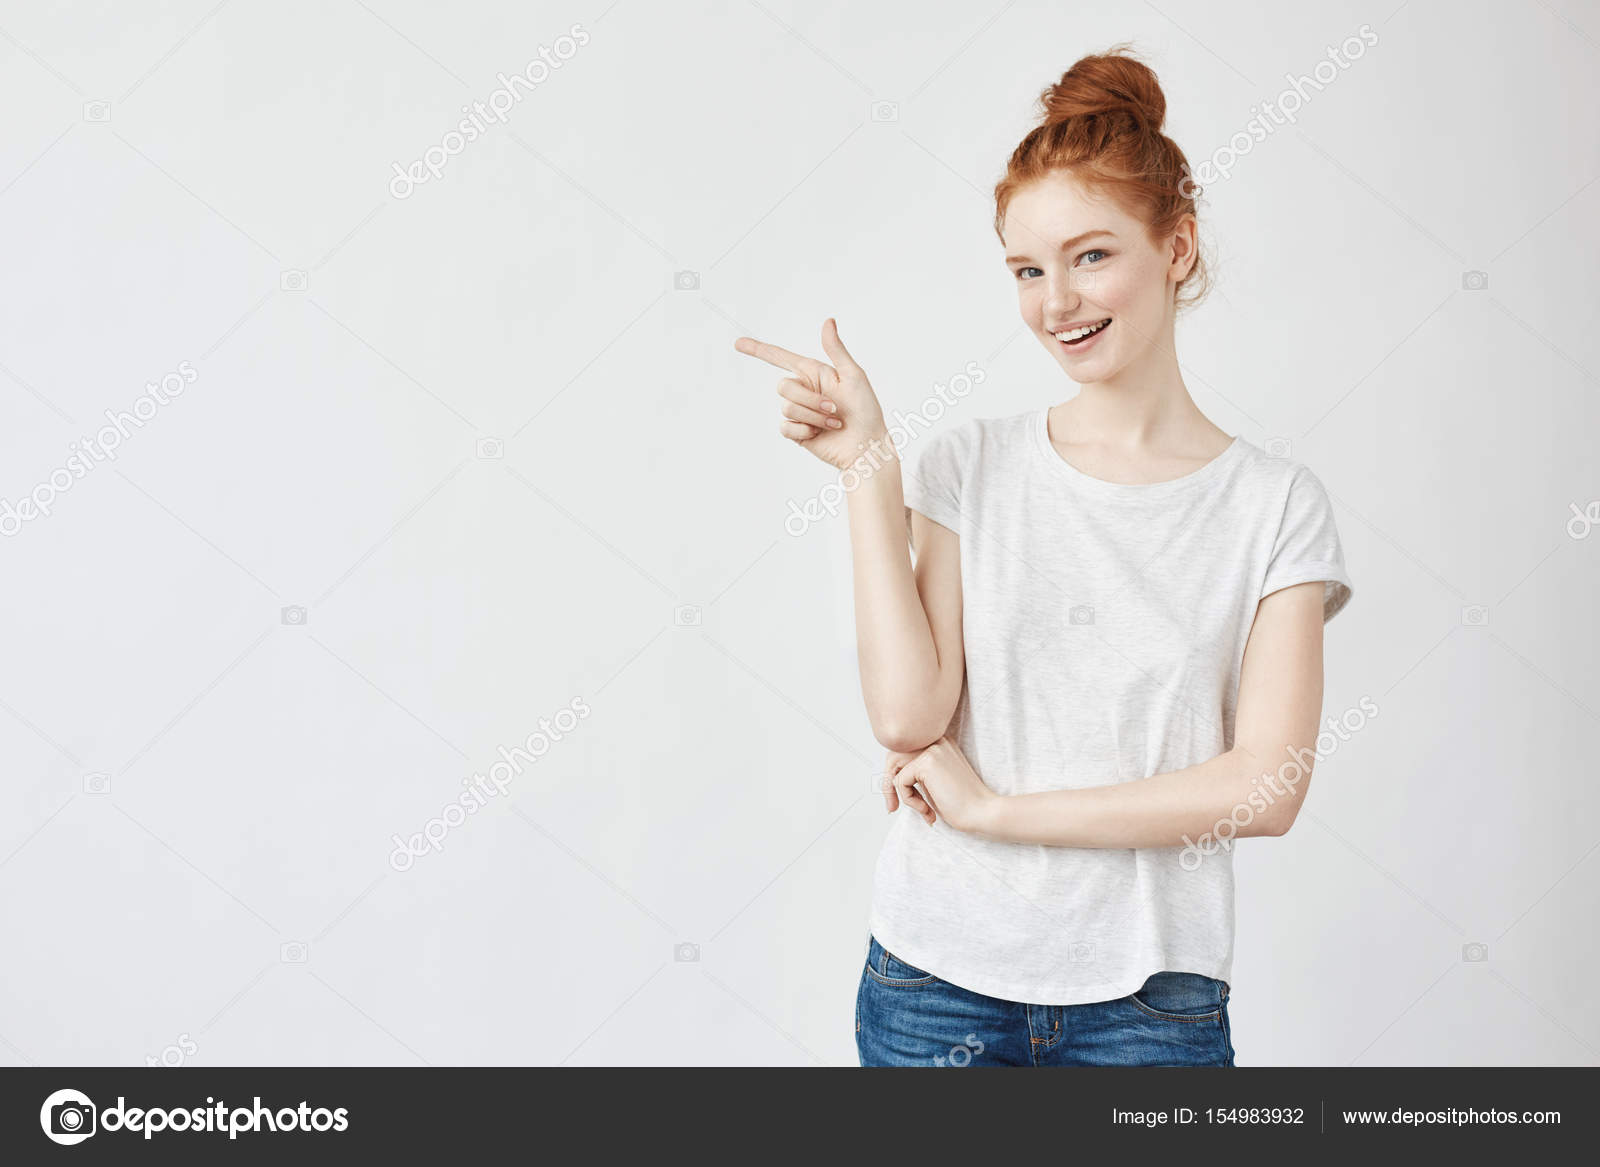 50e305f1d1 Young beautiful girl with foxy hair and freckles smiling pointing finger in  side looking at camera. Copy space. Isolated on white background.